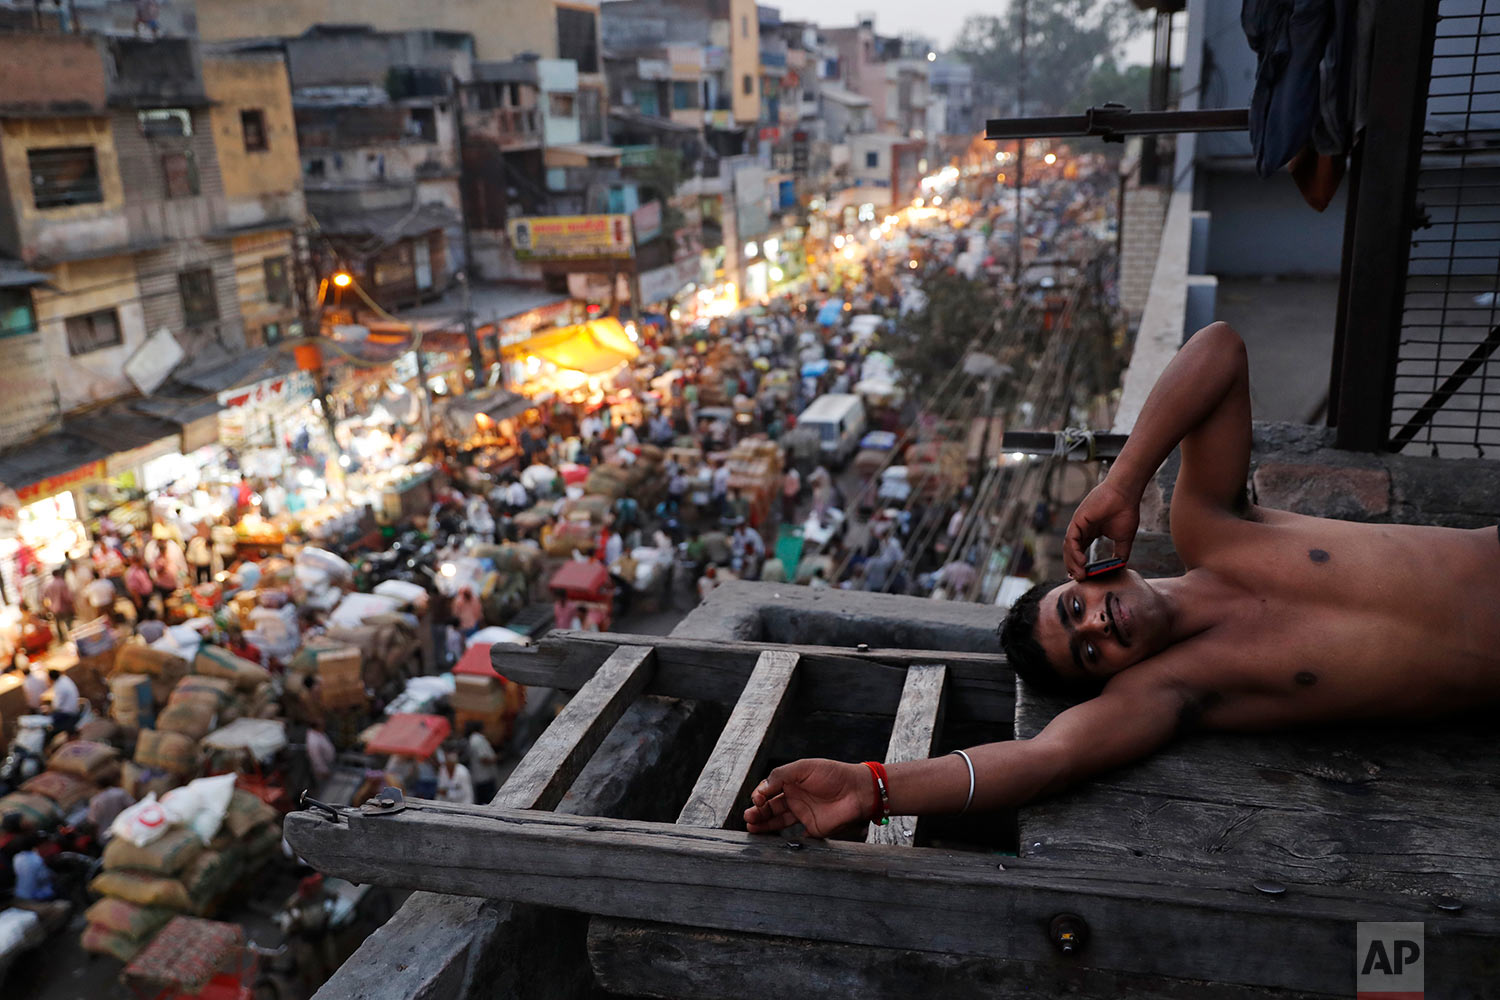 An Indian laborer rests after work as push carts and cycle rickshaws make their way through a crowded street at the old quarters of New Delhi, India, Tuesday, Oct. 10, 2017. (AP Photo/Tsering Topgyal)